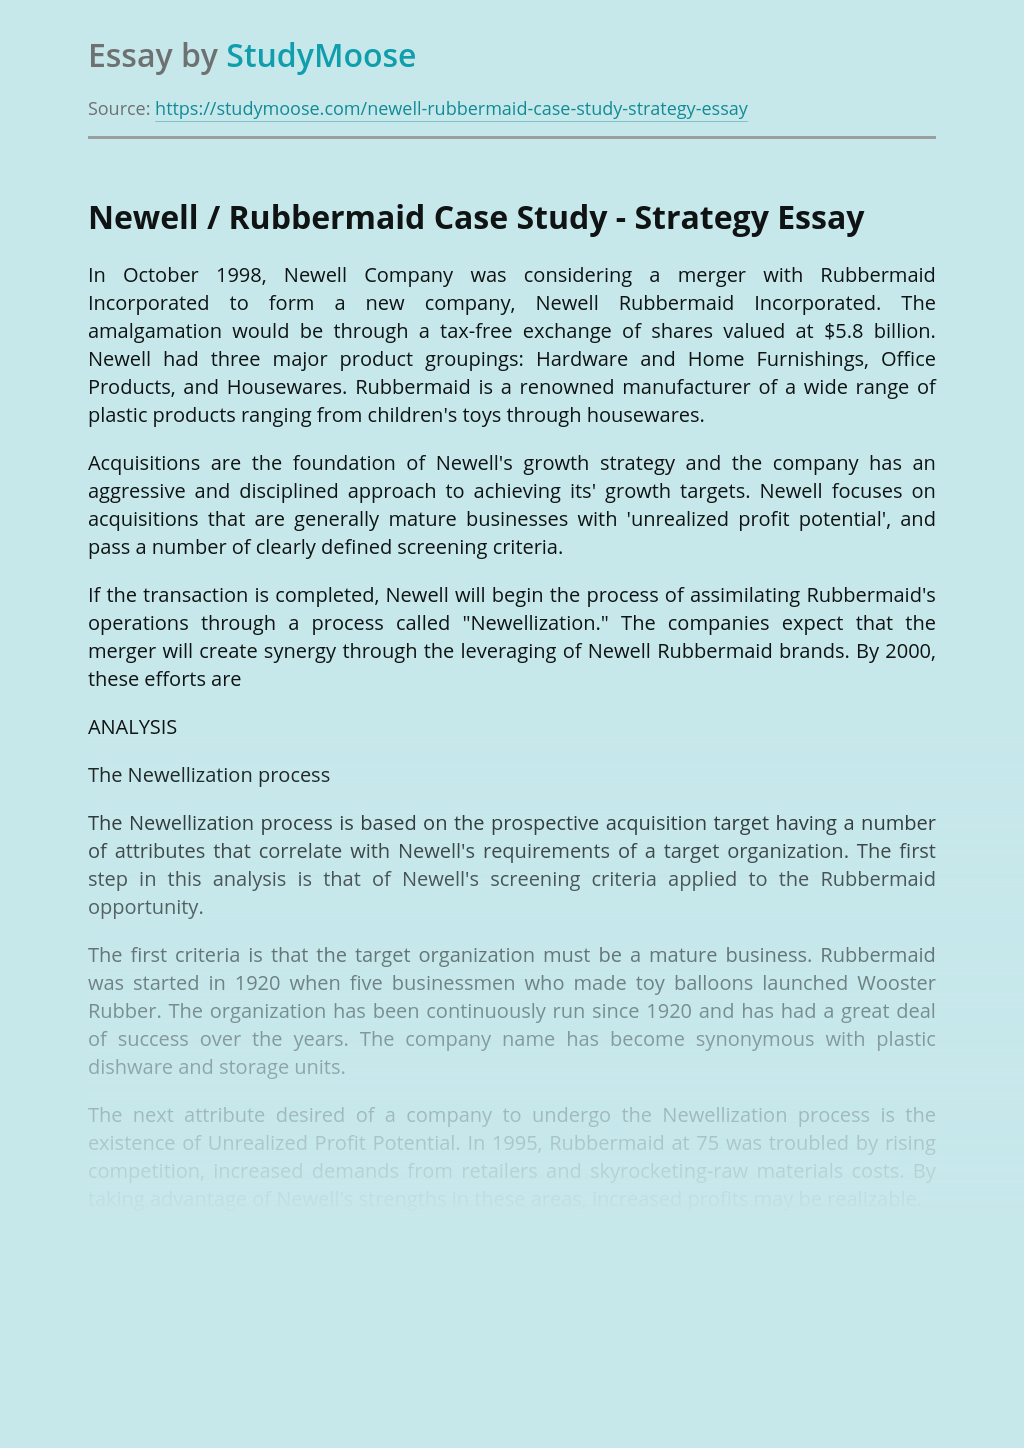 Newell / Rubbermaid Case Study - Strategy